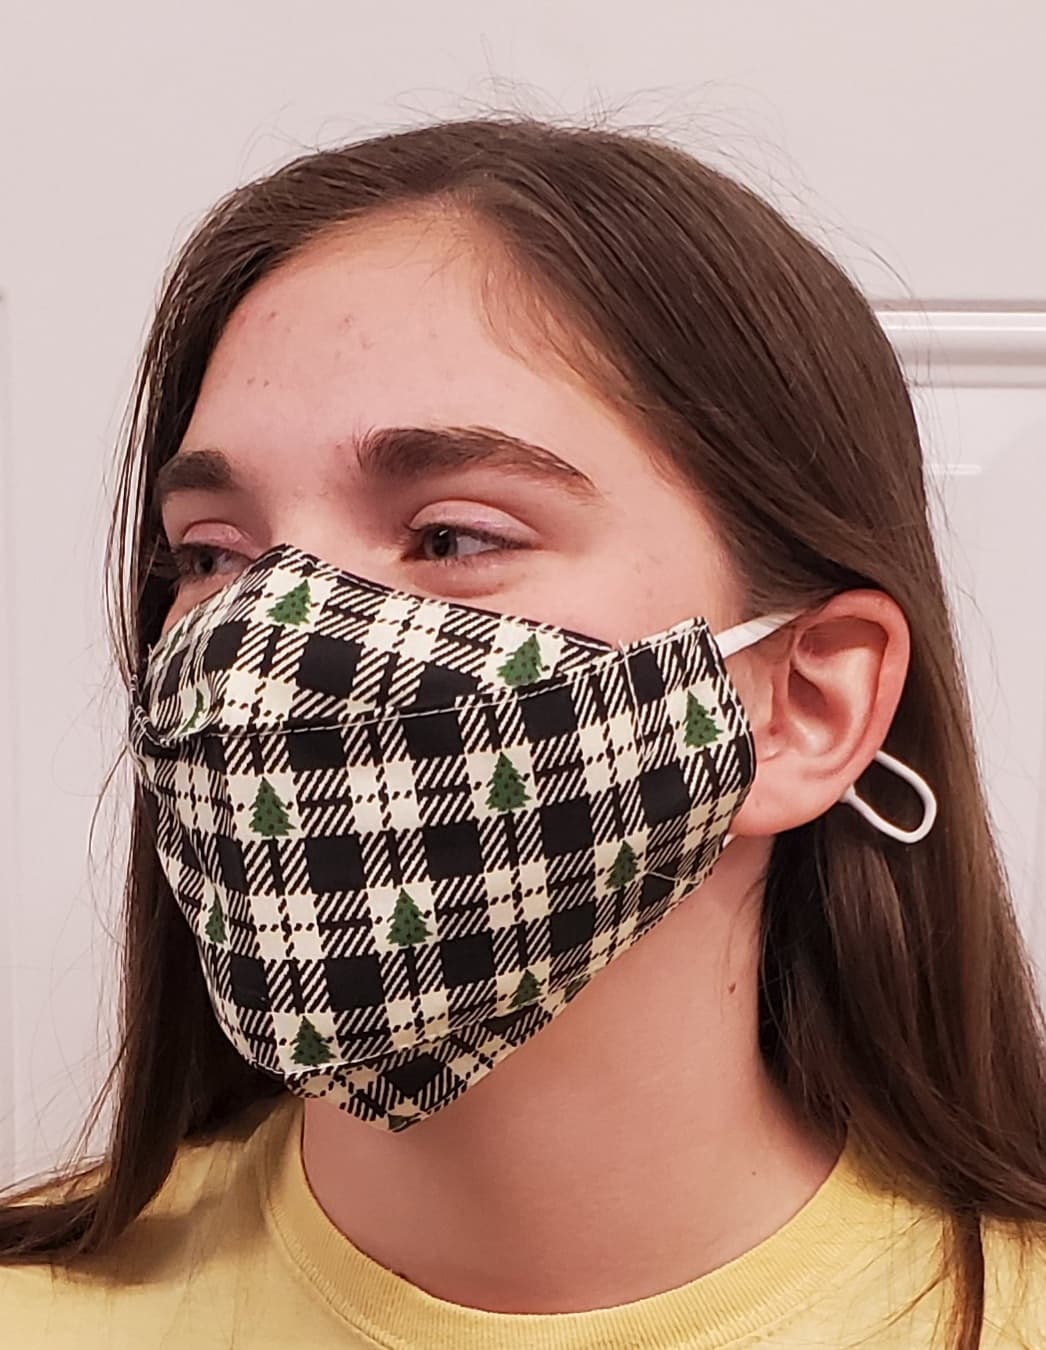 Christmas Plaid Tree No Fog Face Mask - Adjustable